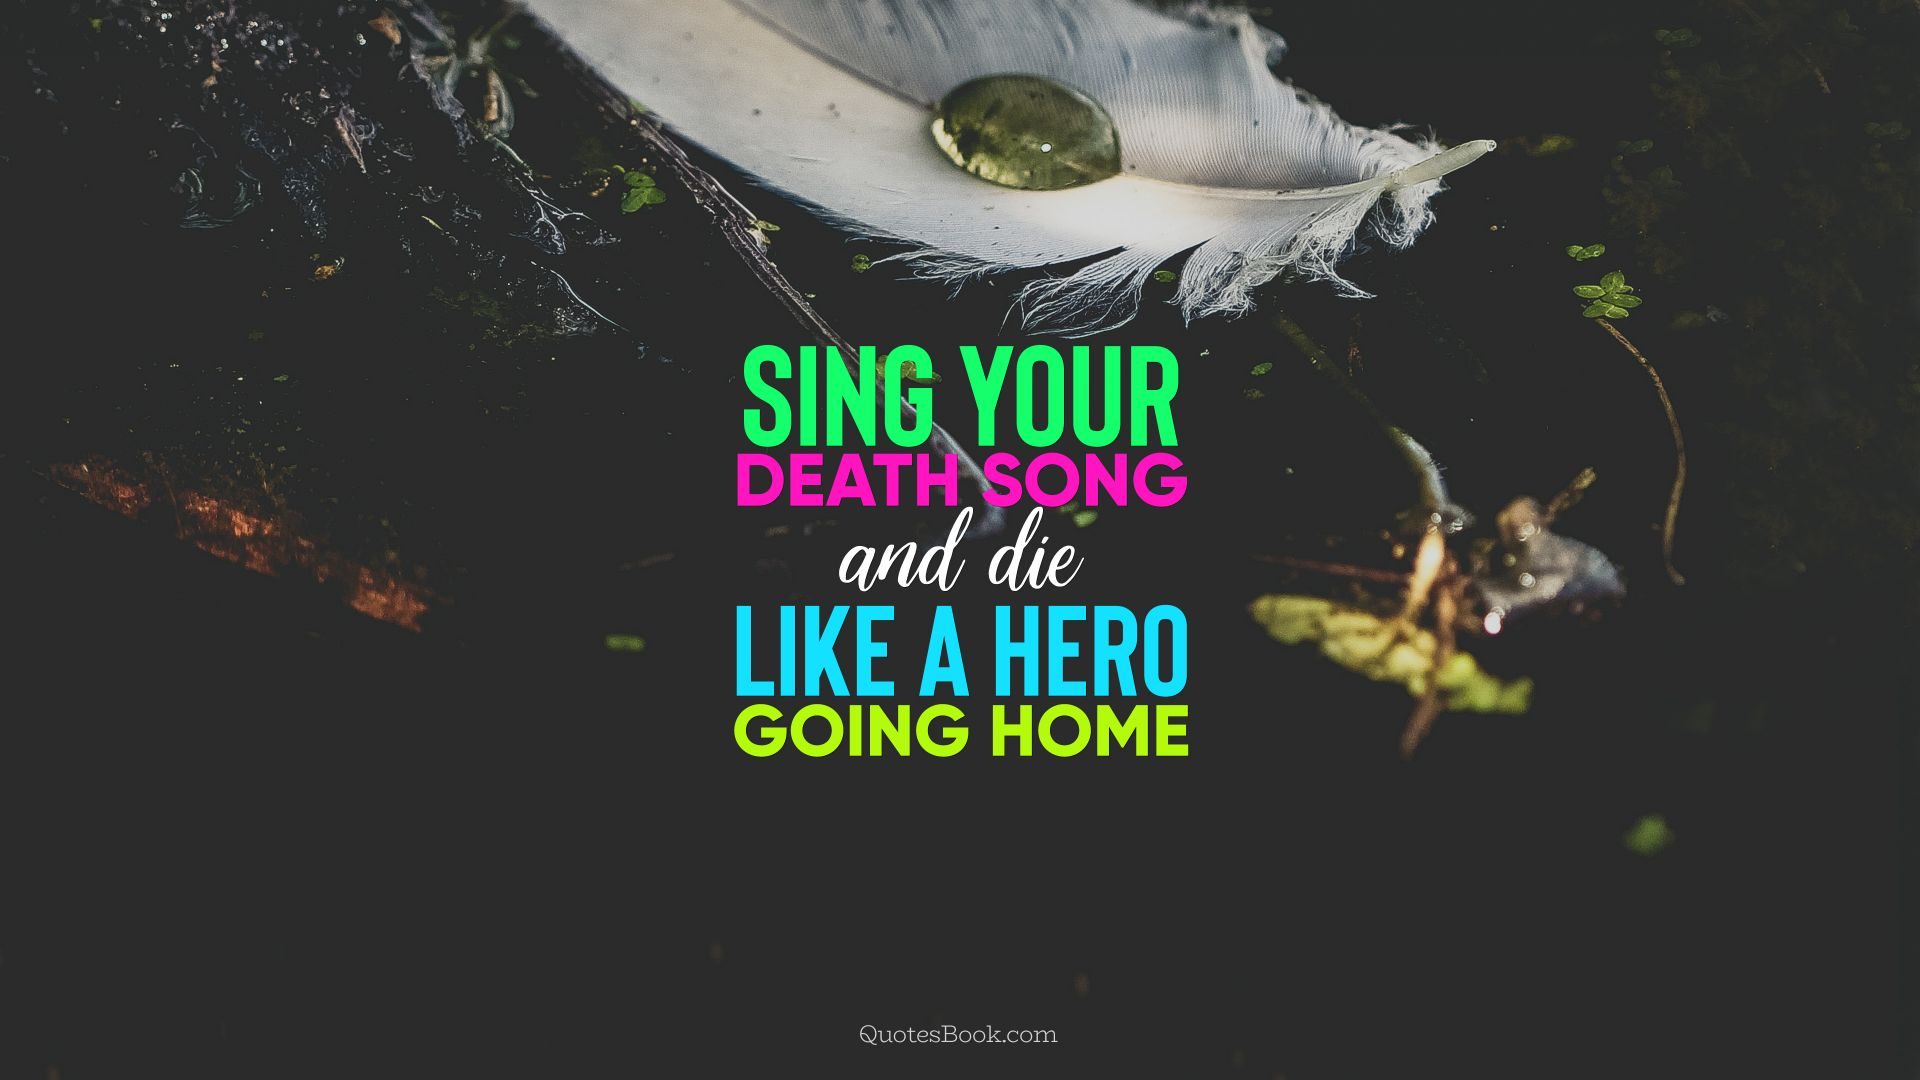 Sing your death song and die like a hero